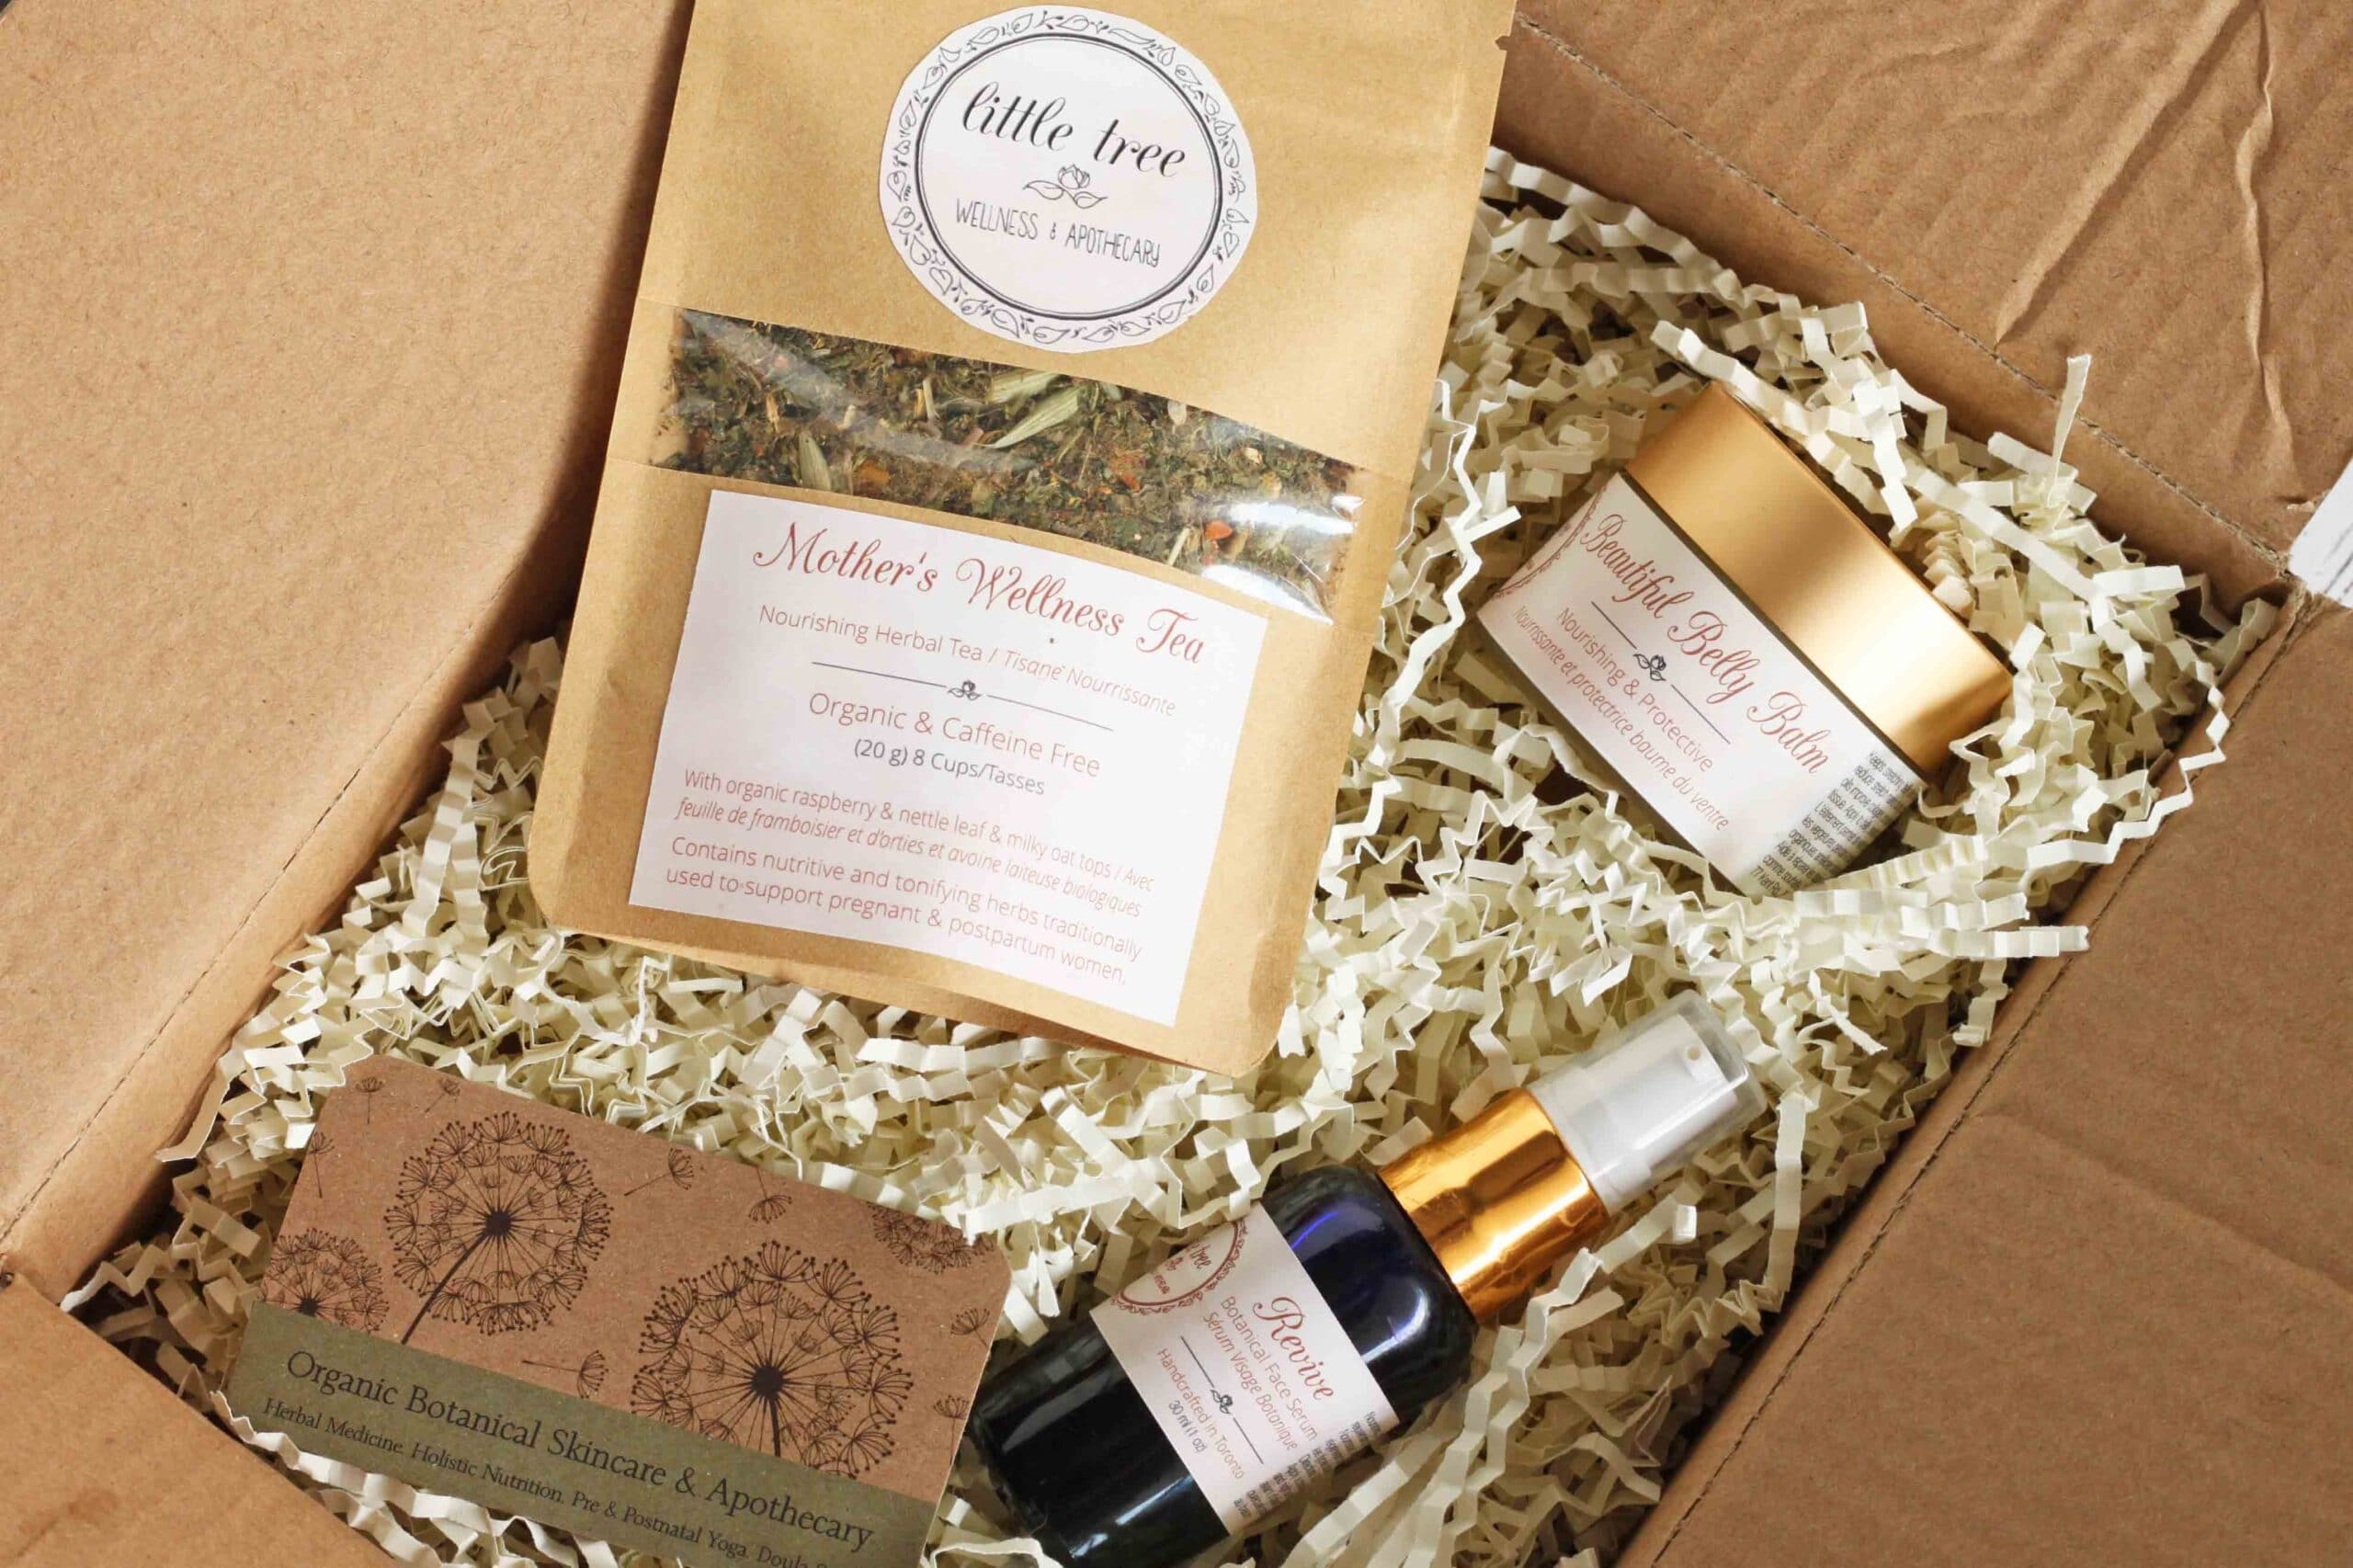 Natural ways to feel beautiful inside and out during pregnancy little tree wellness products box